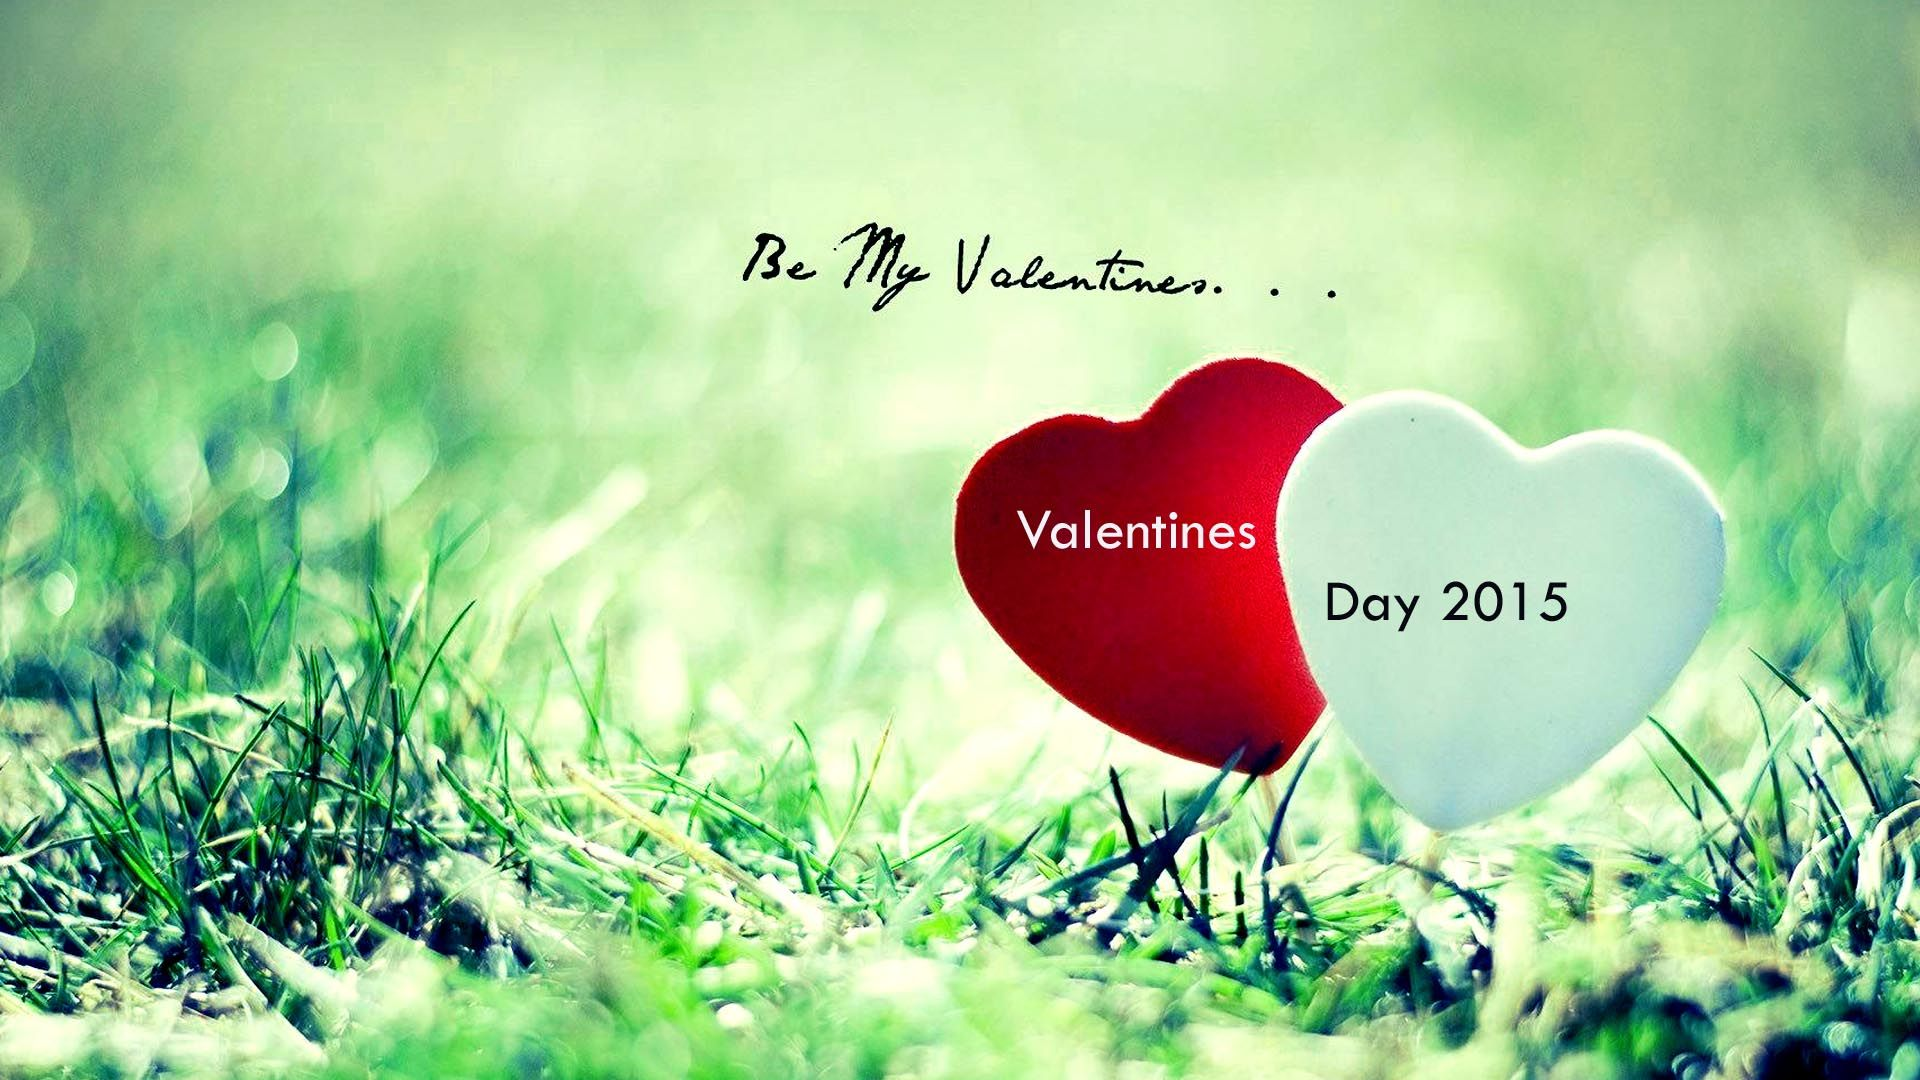 Valentine Day Greetings Msg Wallpapers Sms Images Wishes